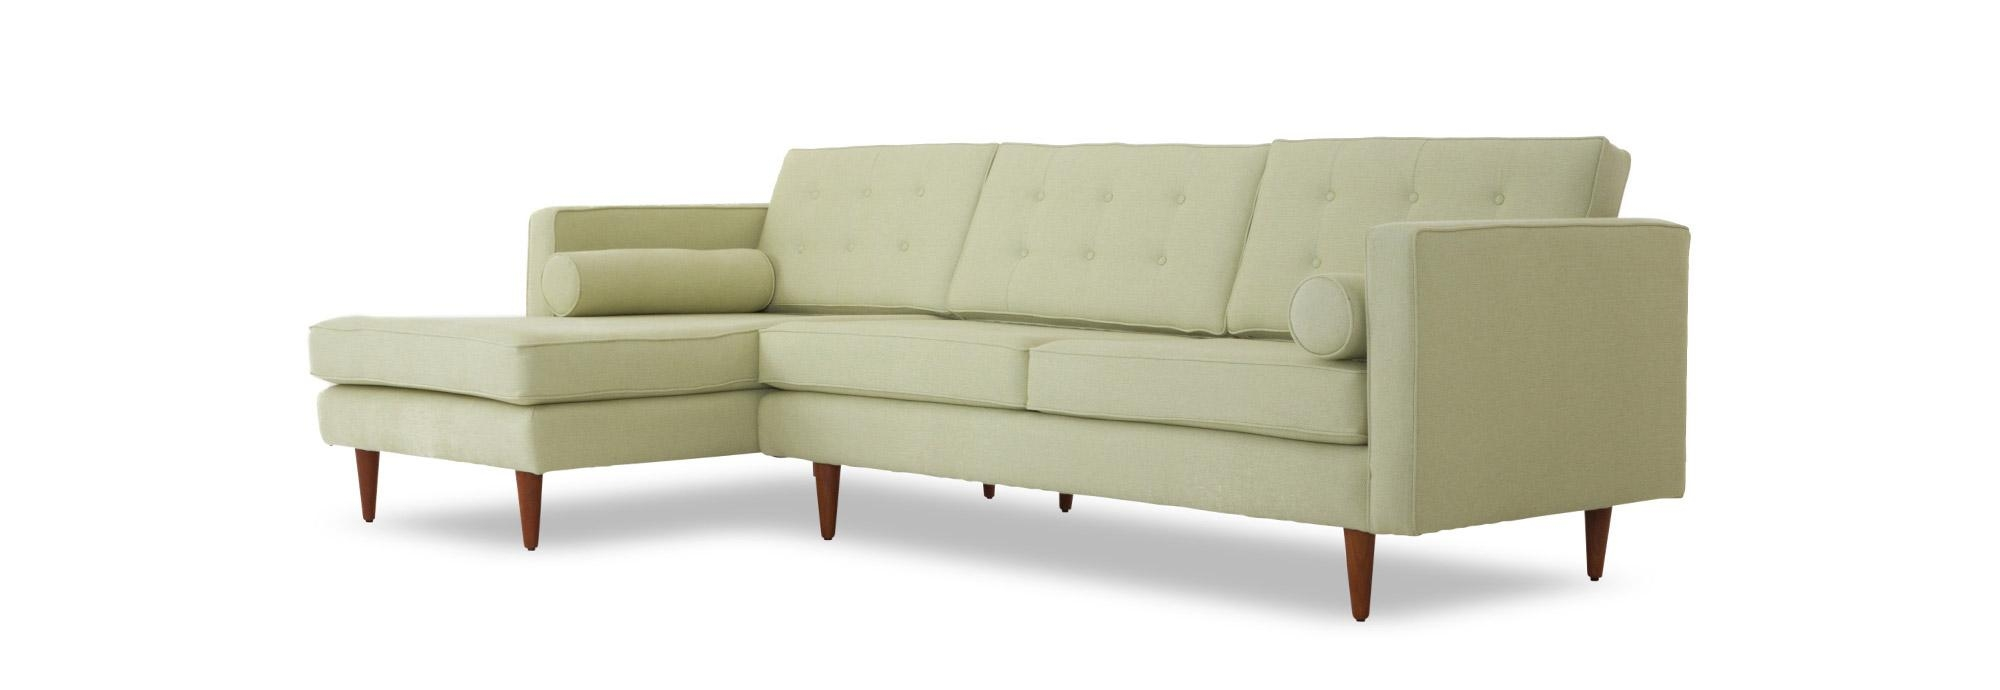 Braxton Sectional | Joybird Intended For Braxton Sectional Sofa (Image 5 of 15)